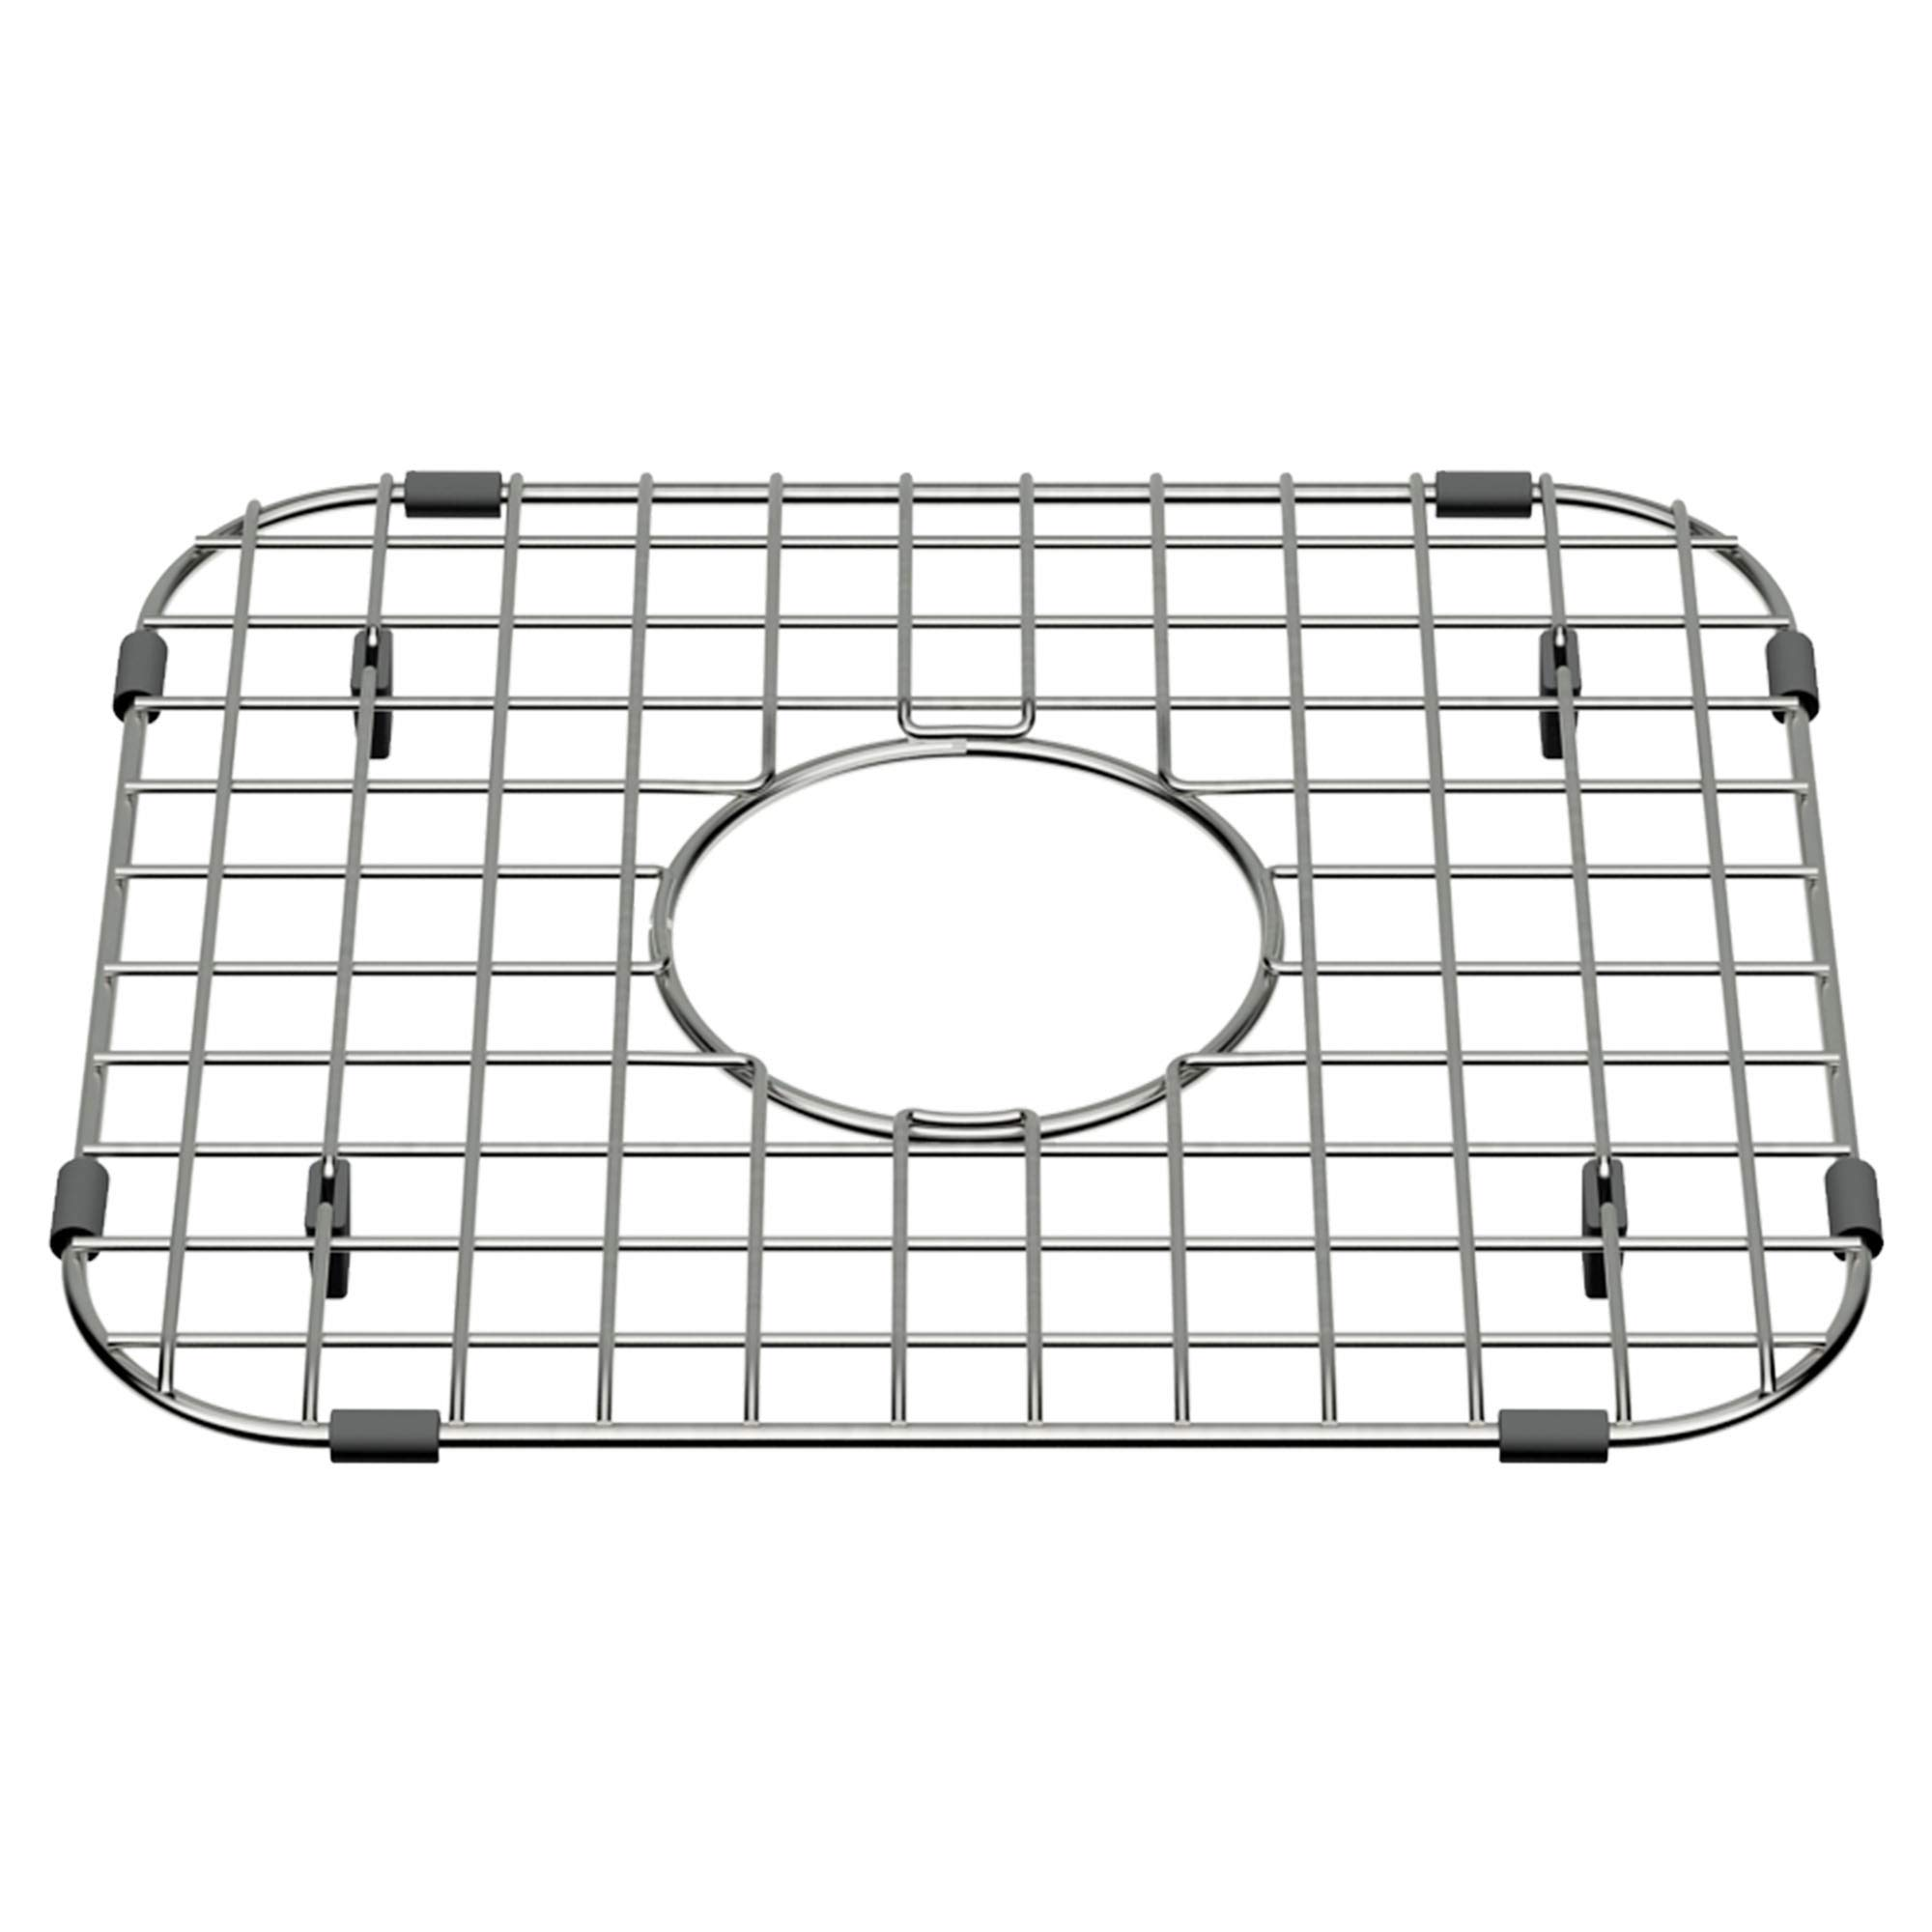 American Standard 8422000.075 Grids for Delancey 16x18-inch Kitchen Sink, Stainless Steel